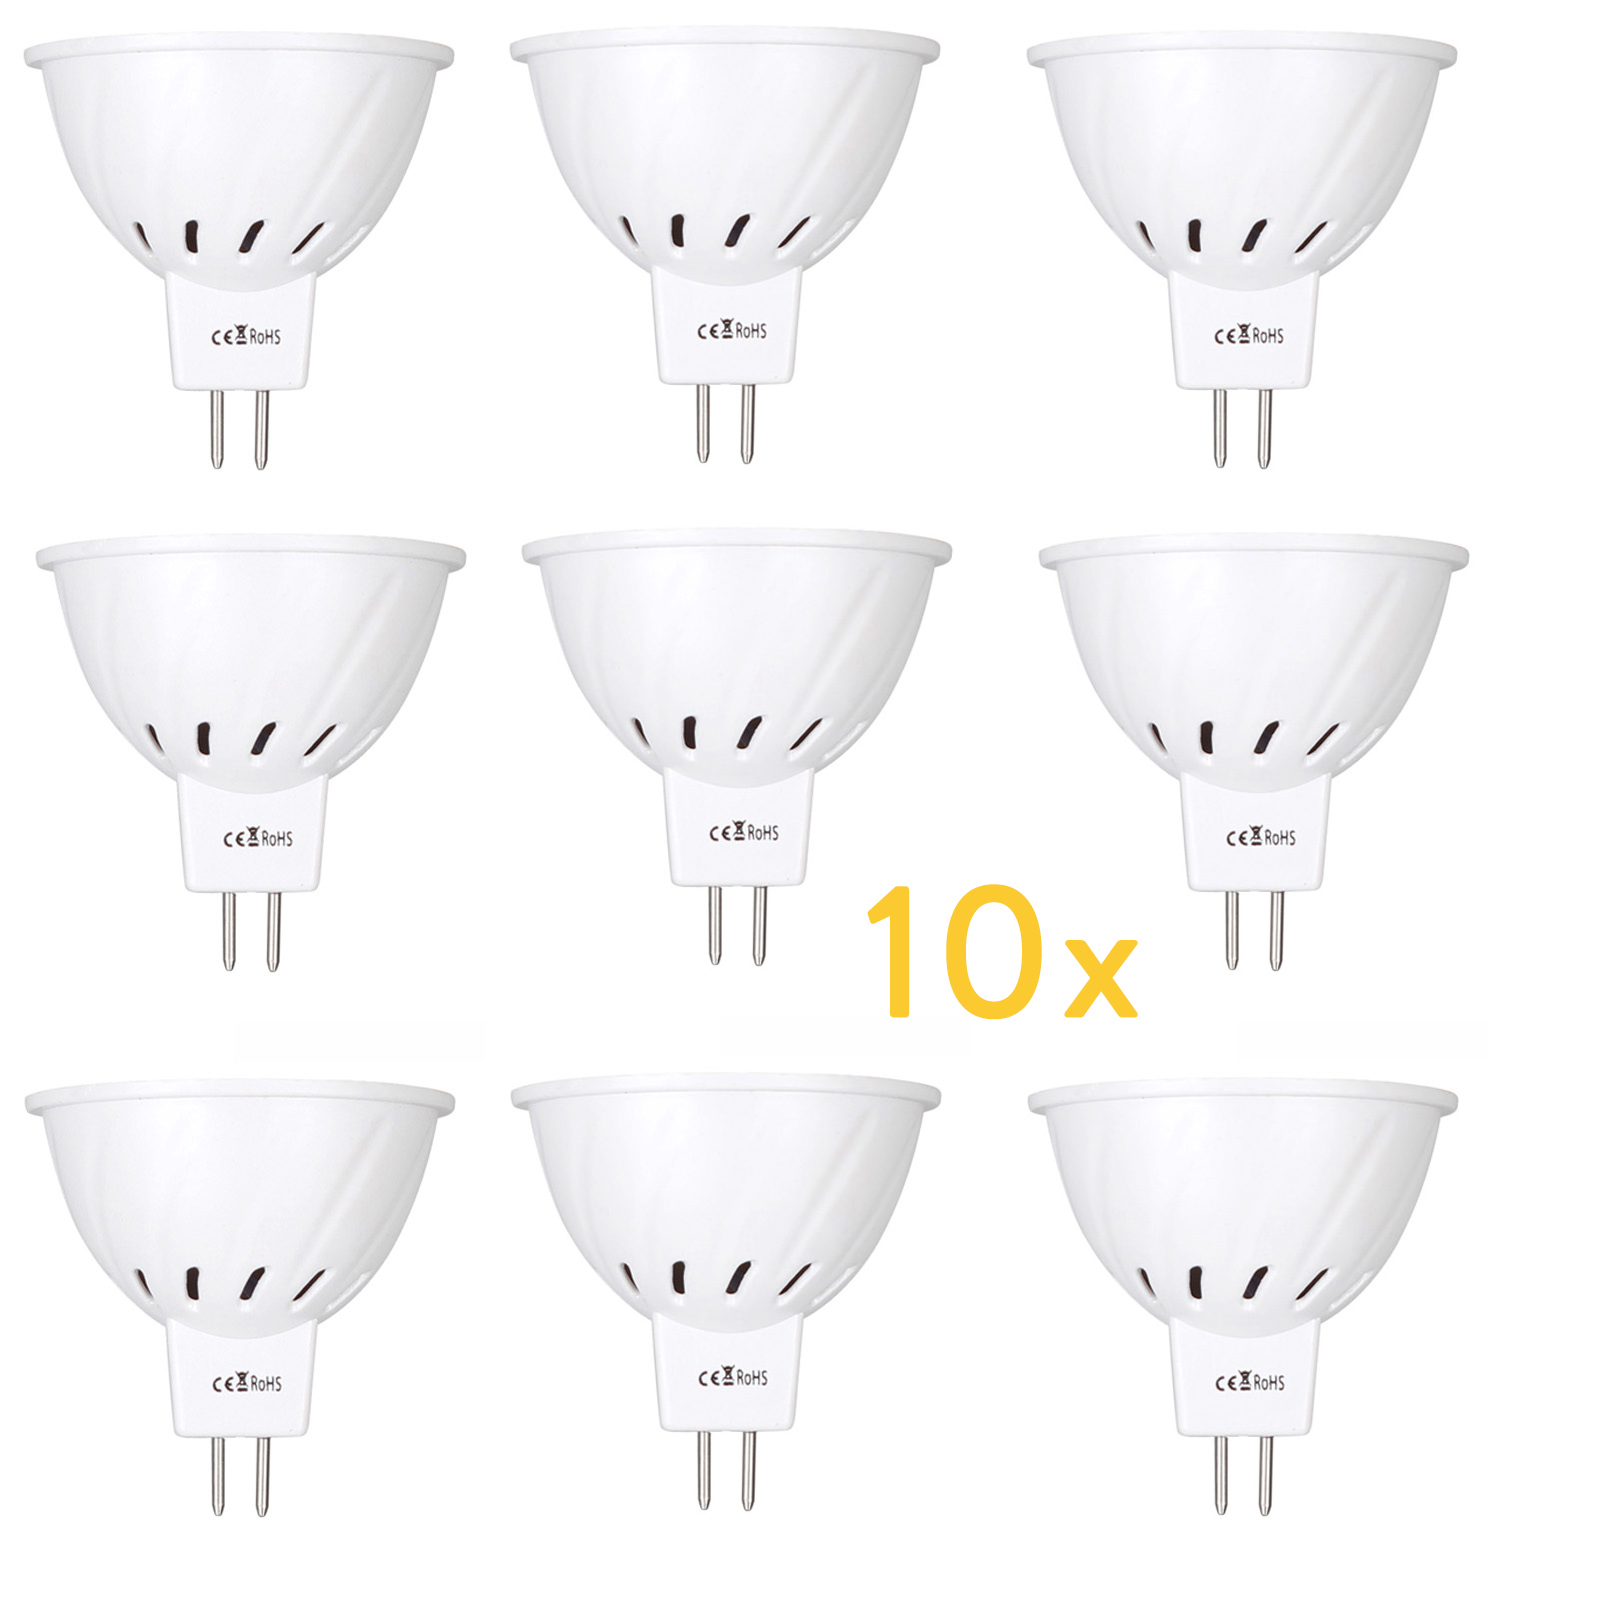 10x MR16 12V-24V LED Bulbs Light 220V <font><b>SMD</b></font> <font><b>2835</b></font> Led Spotlights 4W 6W 8W 36 54 72LED Warm Cold Warm White MR 16 LED Lamp For Home image